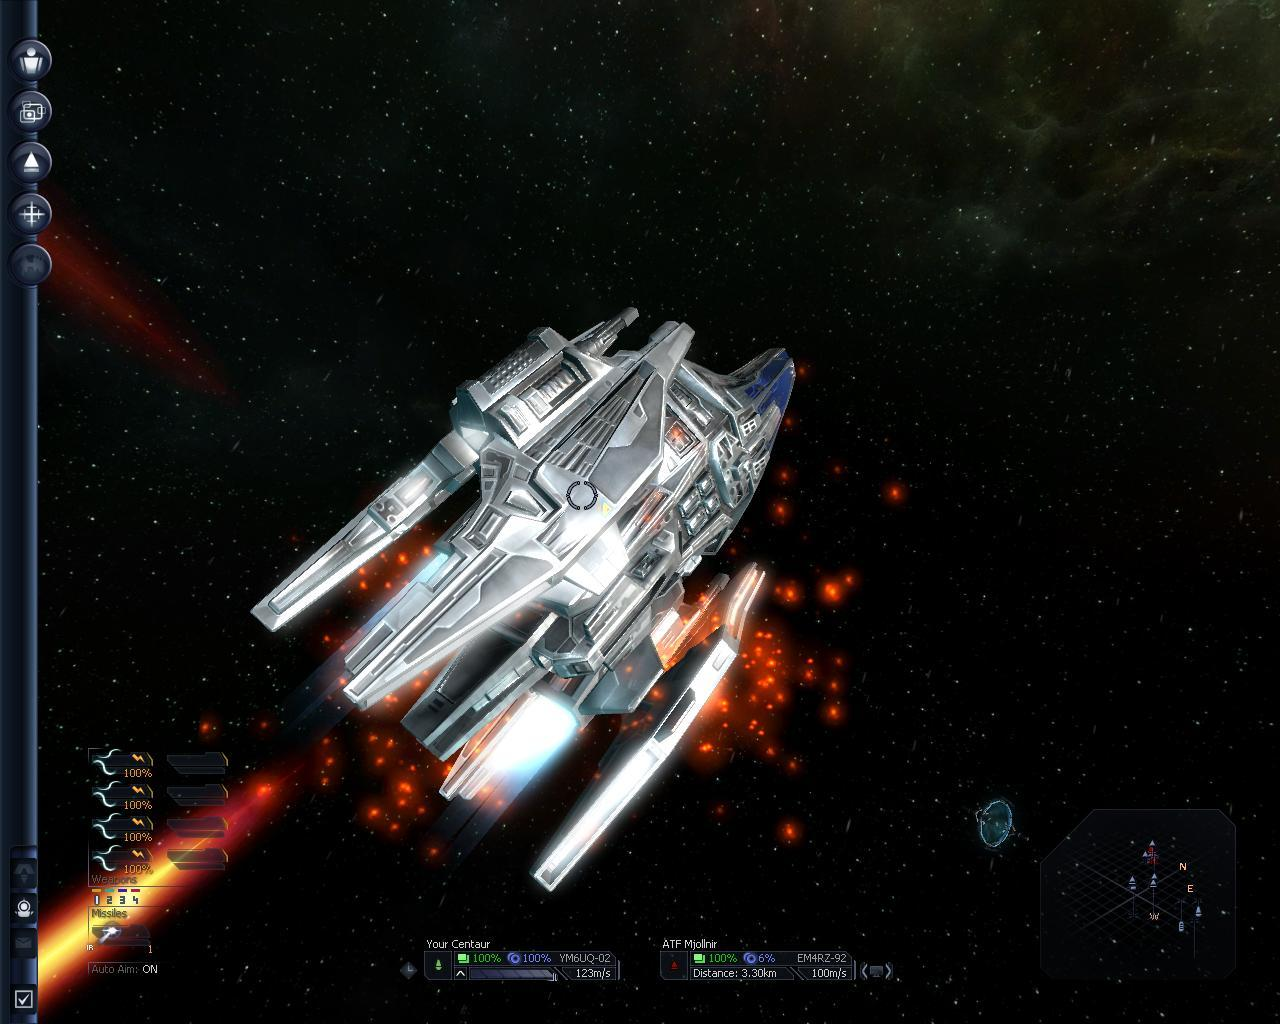 X3: Albion Prelude - Fun Times, But Not Without Work   Space